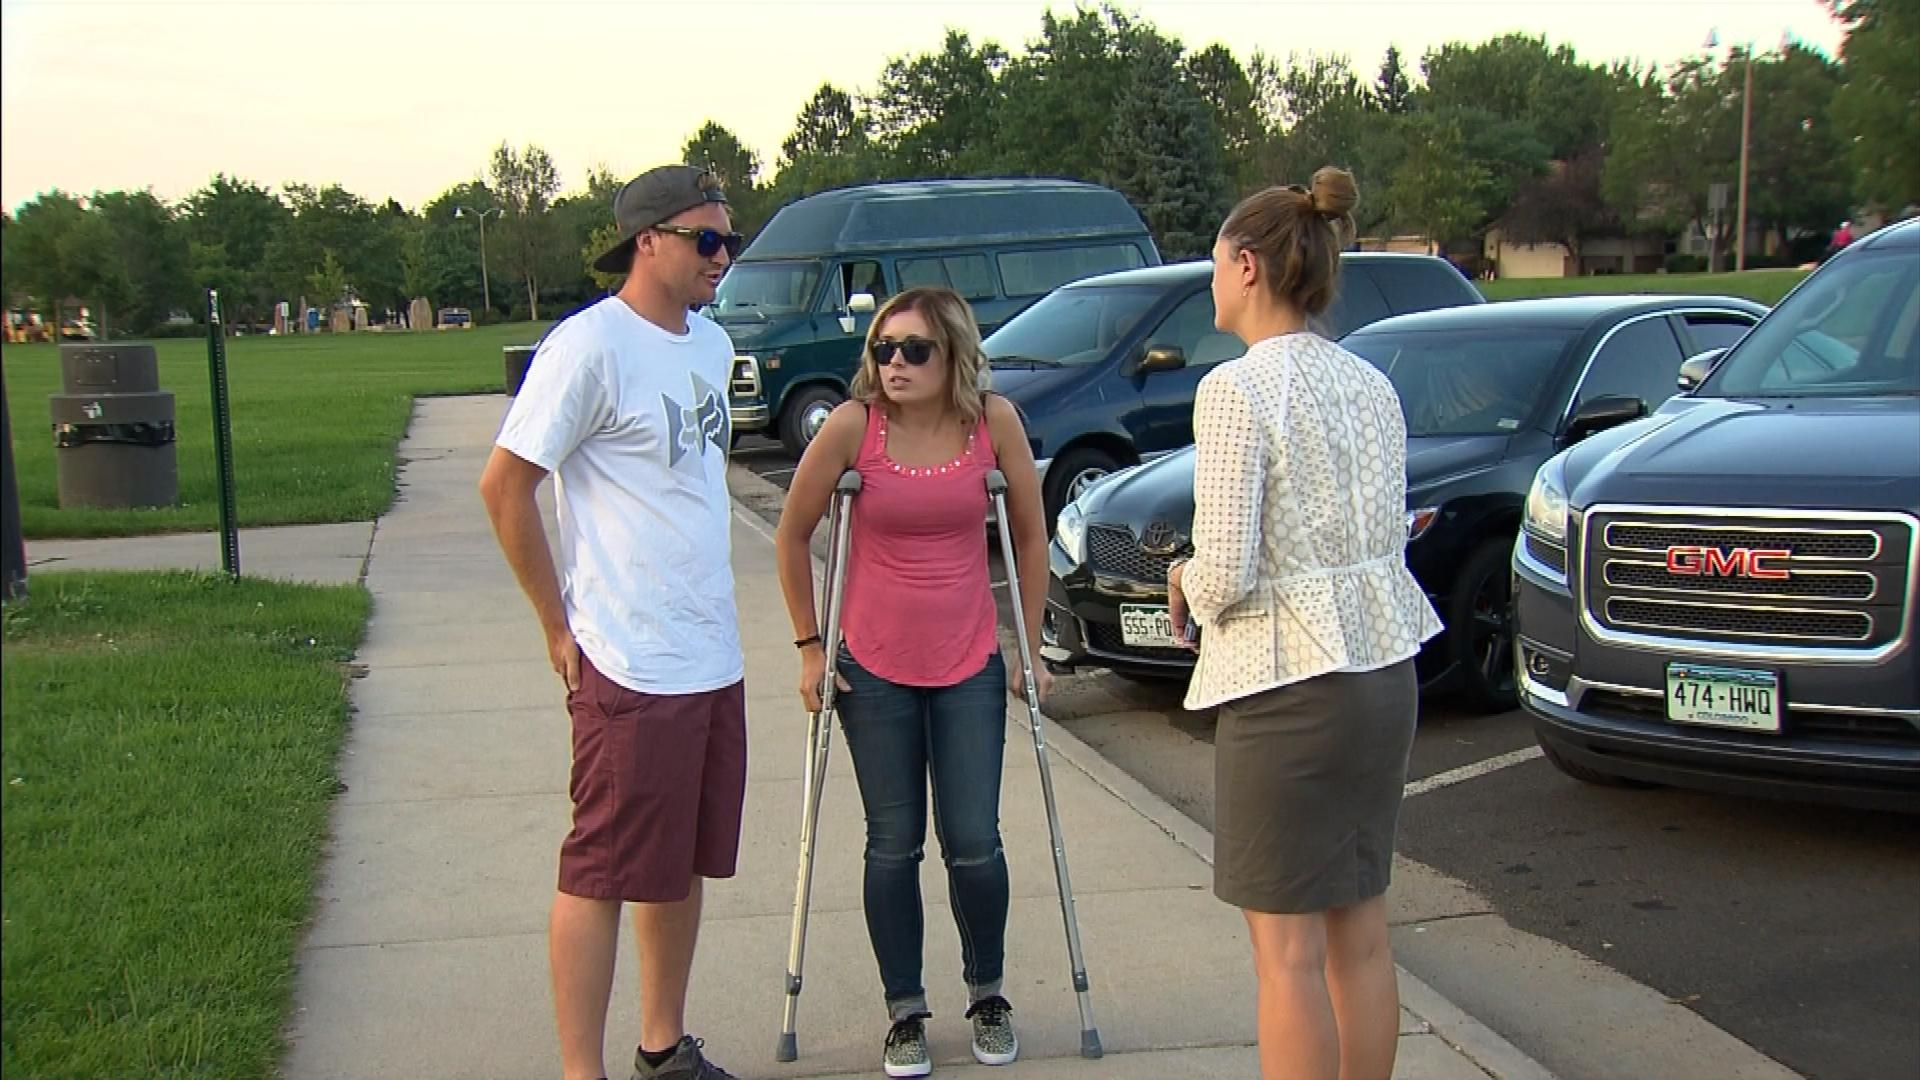 CBS4's Lauren DiSpirito interviews Michael Brade and Shelby Ginn. (credit: CBS)